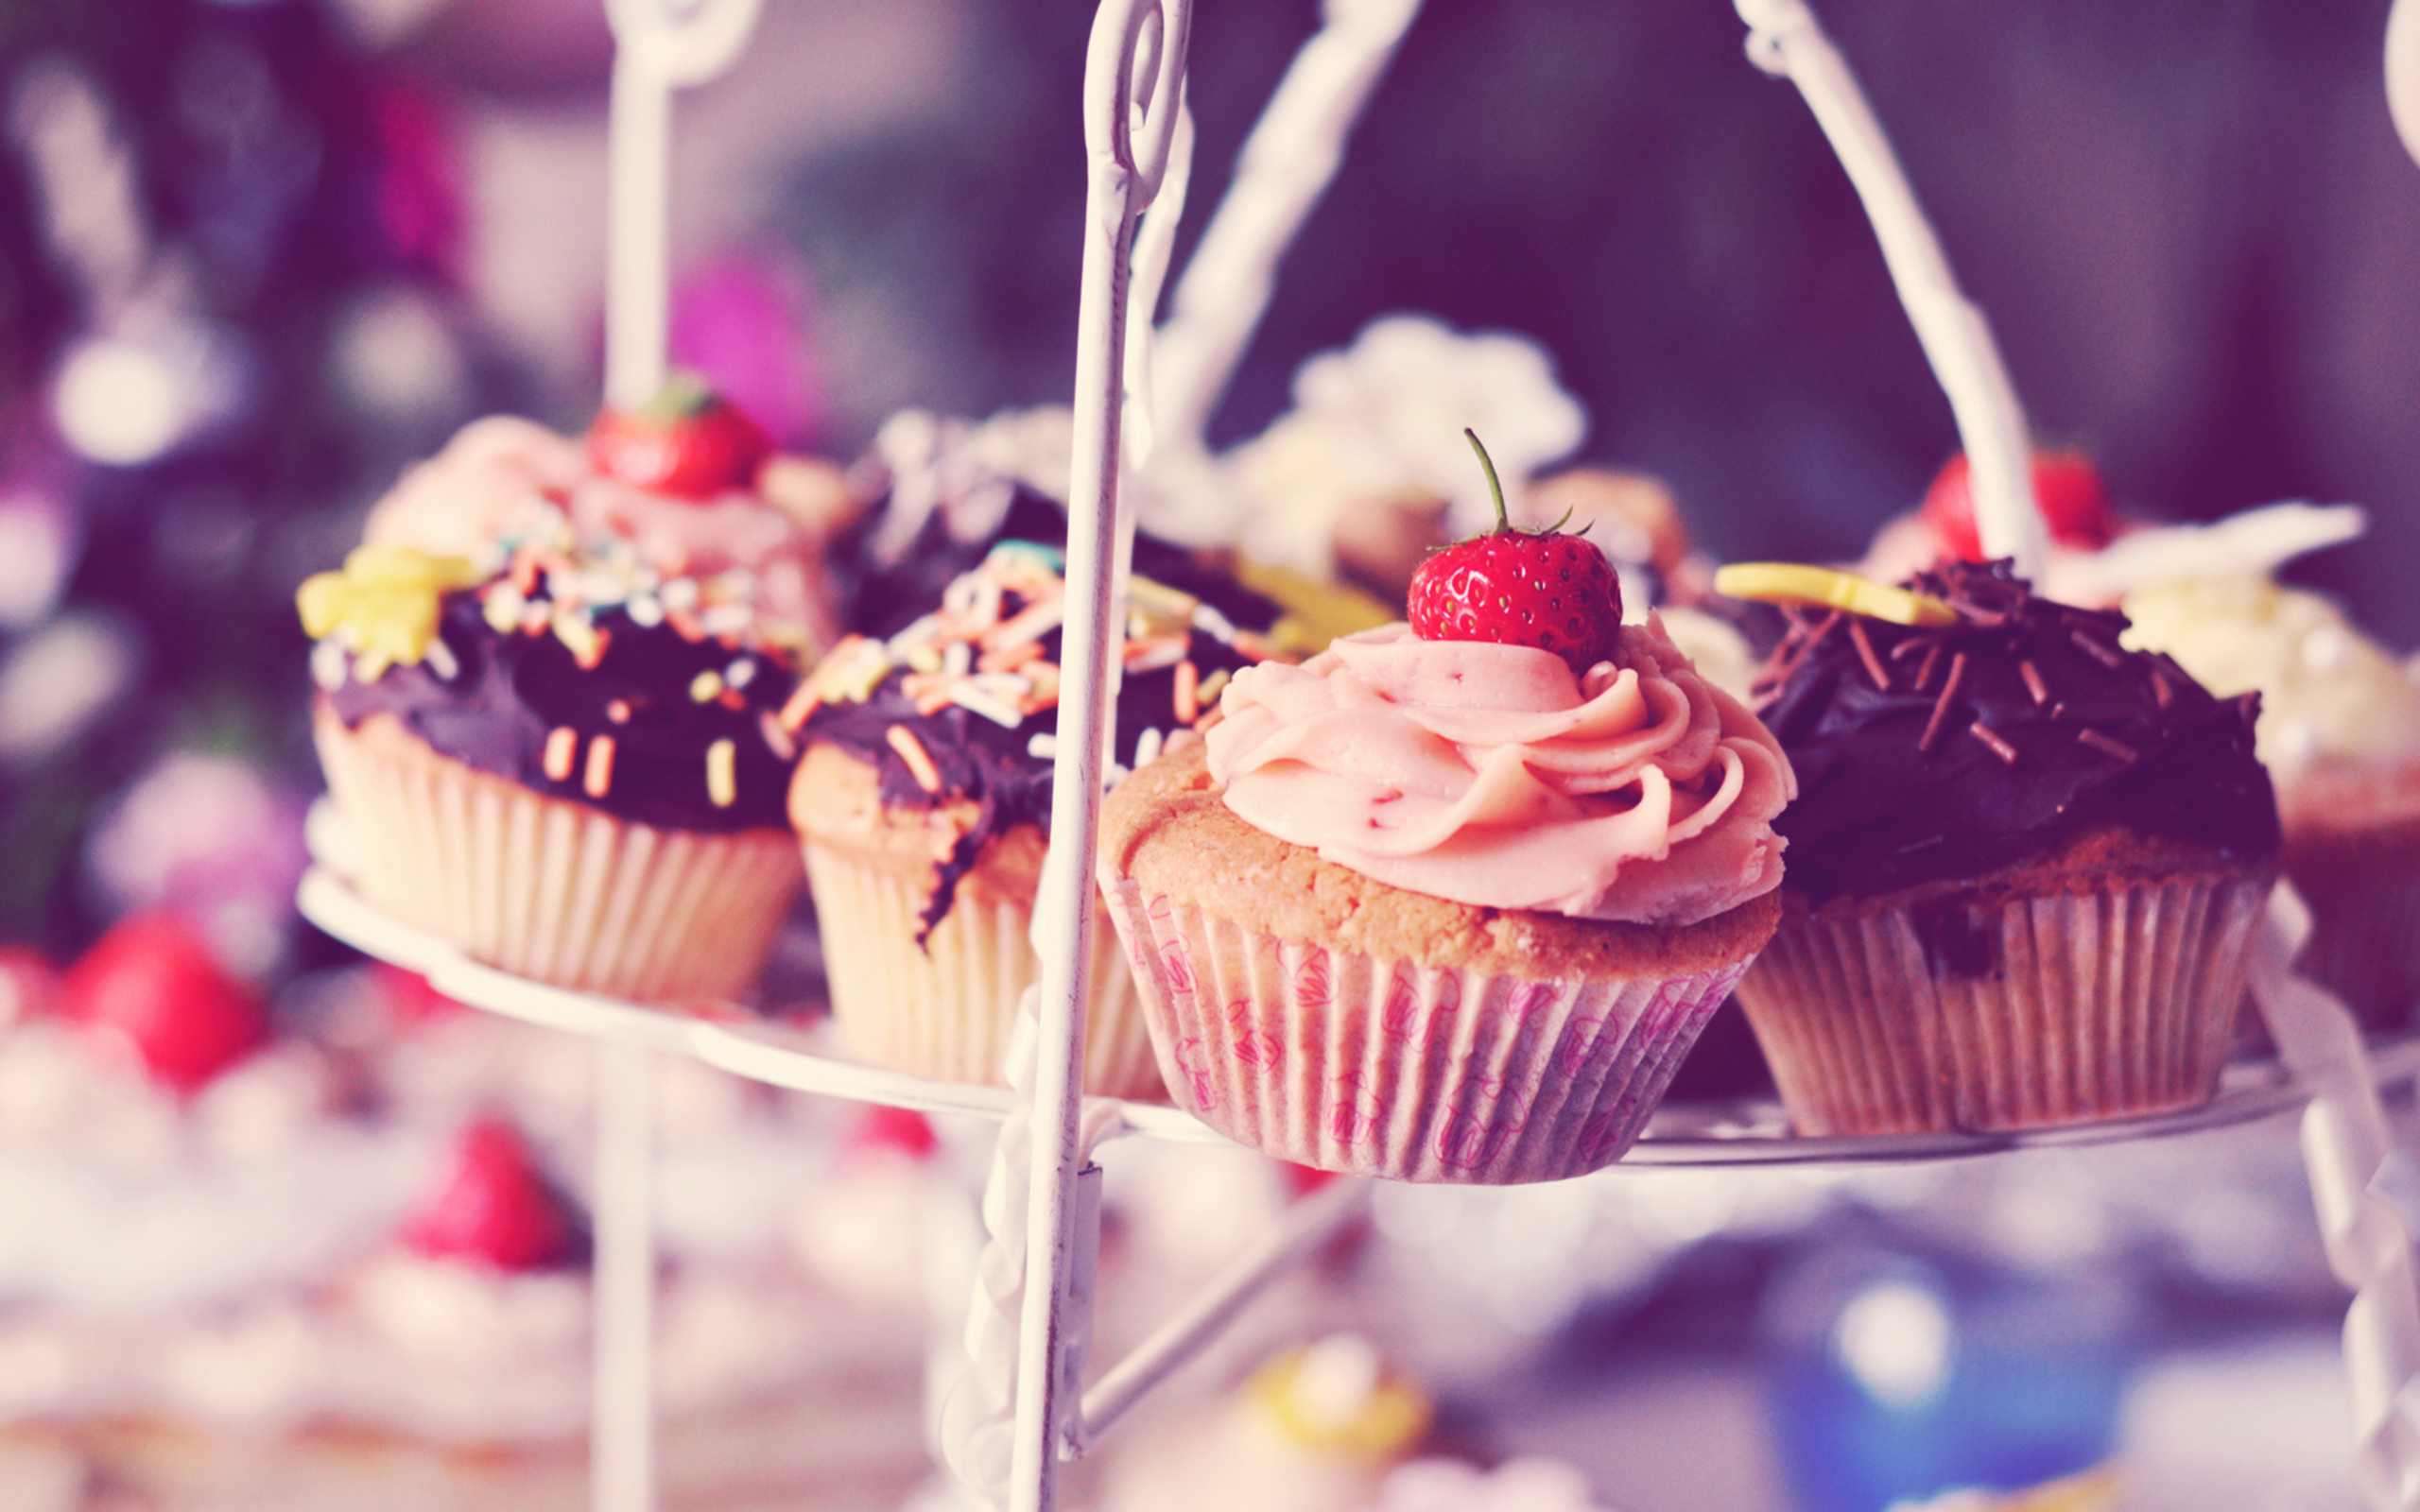 cupcake vintage wallpaper hd